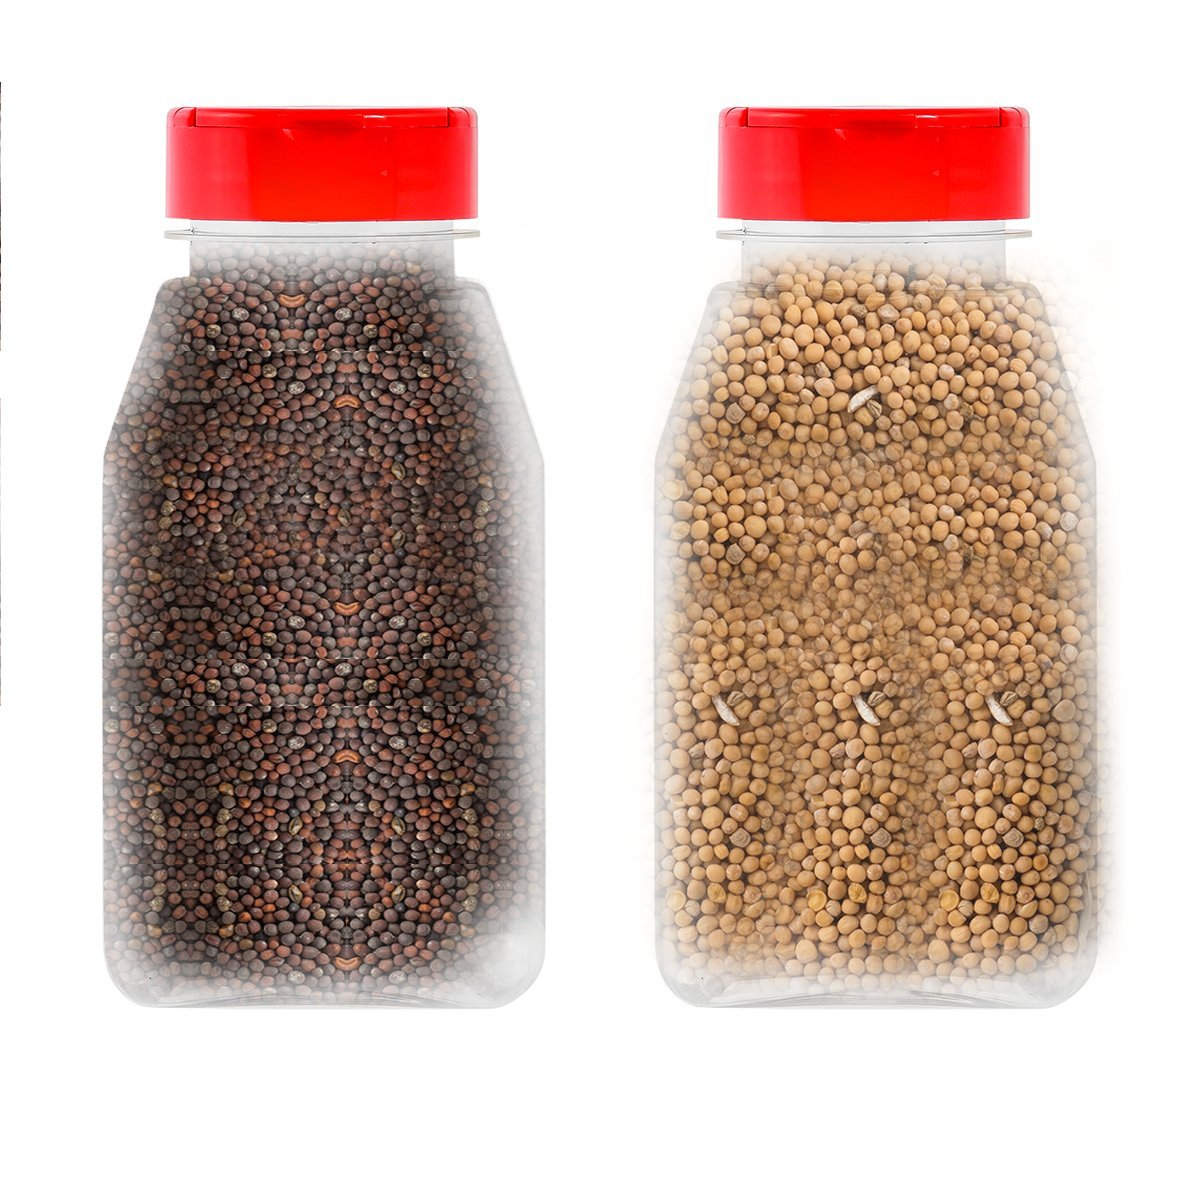 LARGE 16OZ CLEAR PLASTIC SPICE CONTAINERS BOTTLE JARS - FLAPPER CAP TO POUR OR SIFTER SHAKER. USED TO STORE SPICES, HERBSAND IS REFILLABLE-BPA FREE (6, red caps)